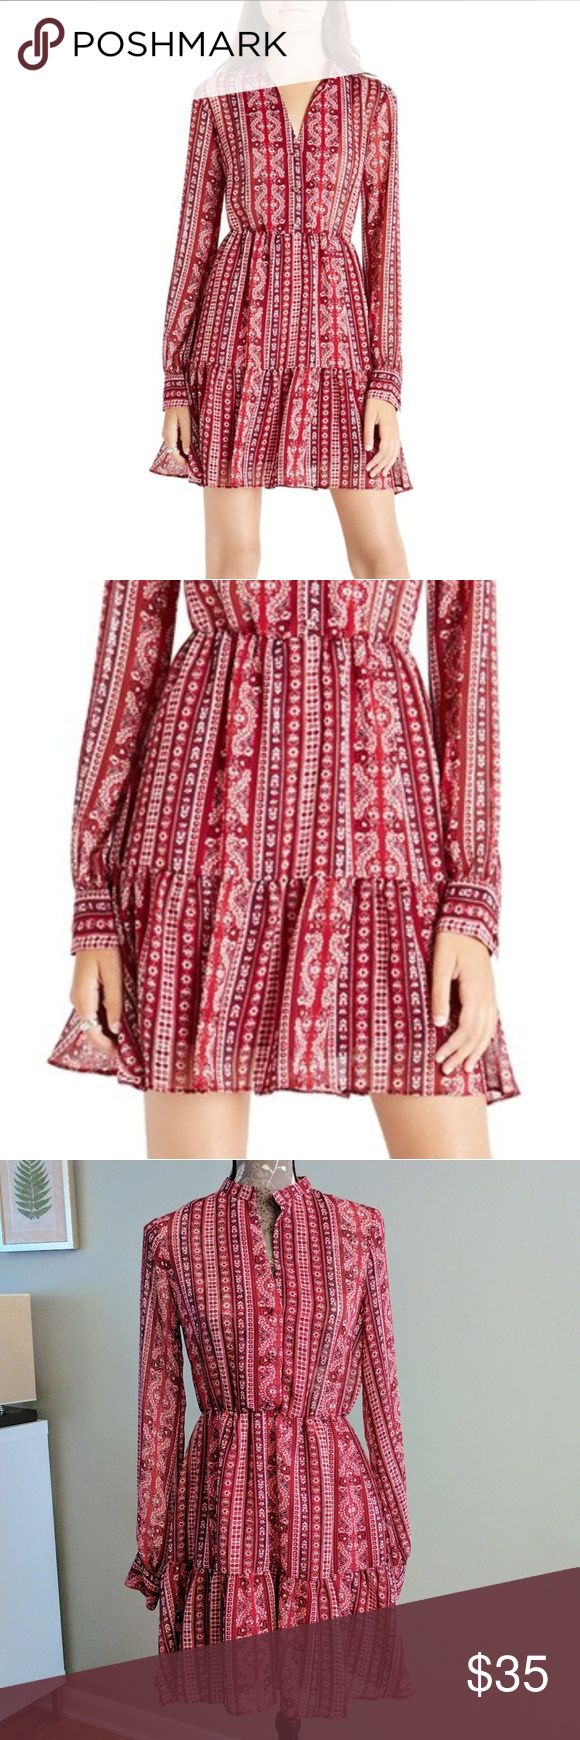 BCBGeneration Print Georgette Shirtdress Wine red printed peasant style dress with flared skirt. Bodice is semi sheer and skirt is lined. Elastic waist. Size Small. BCBGeneration Dresses